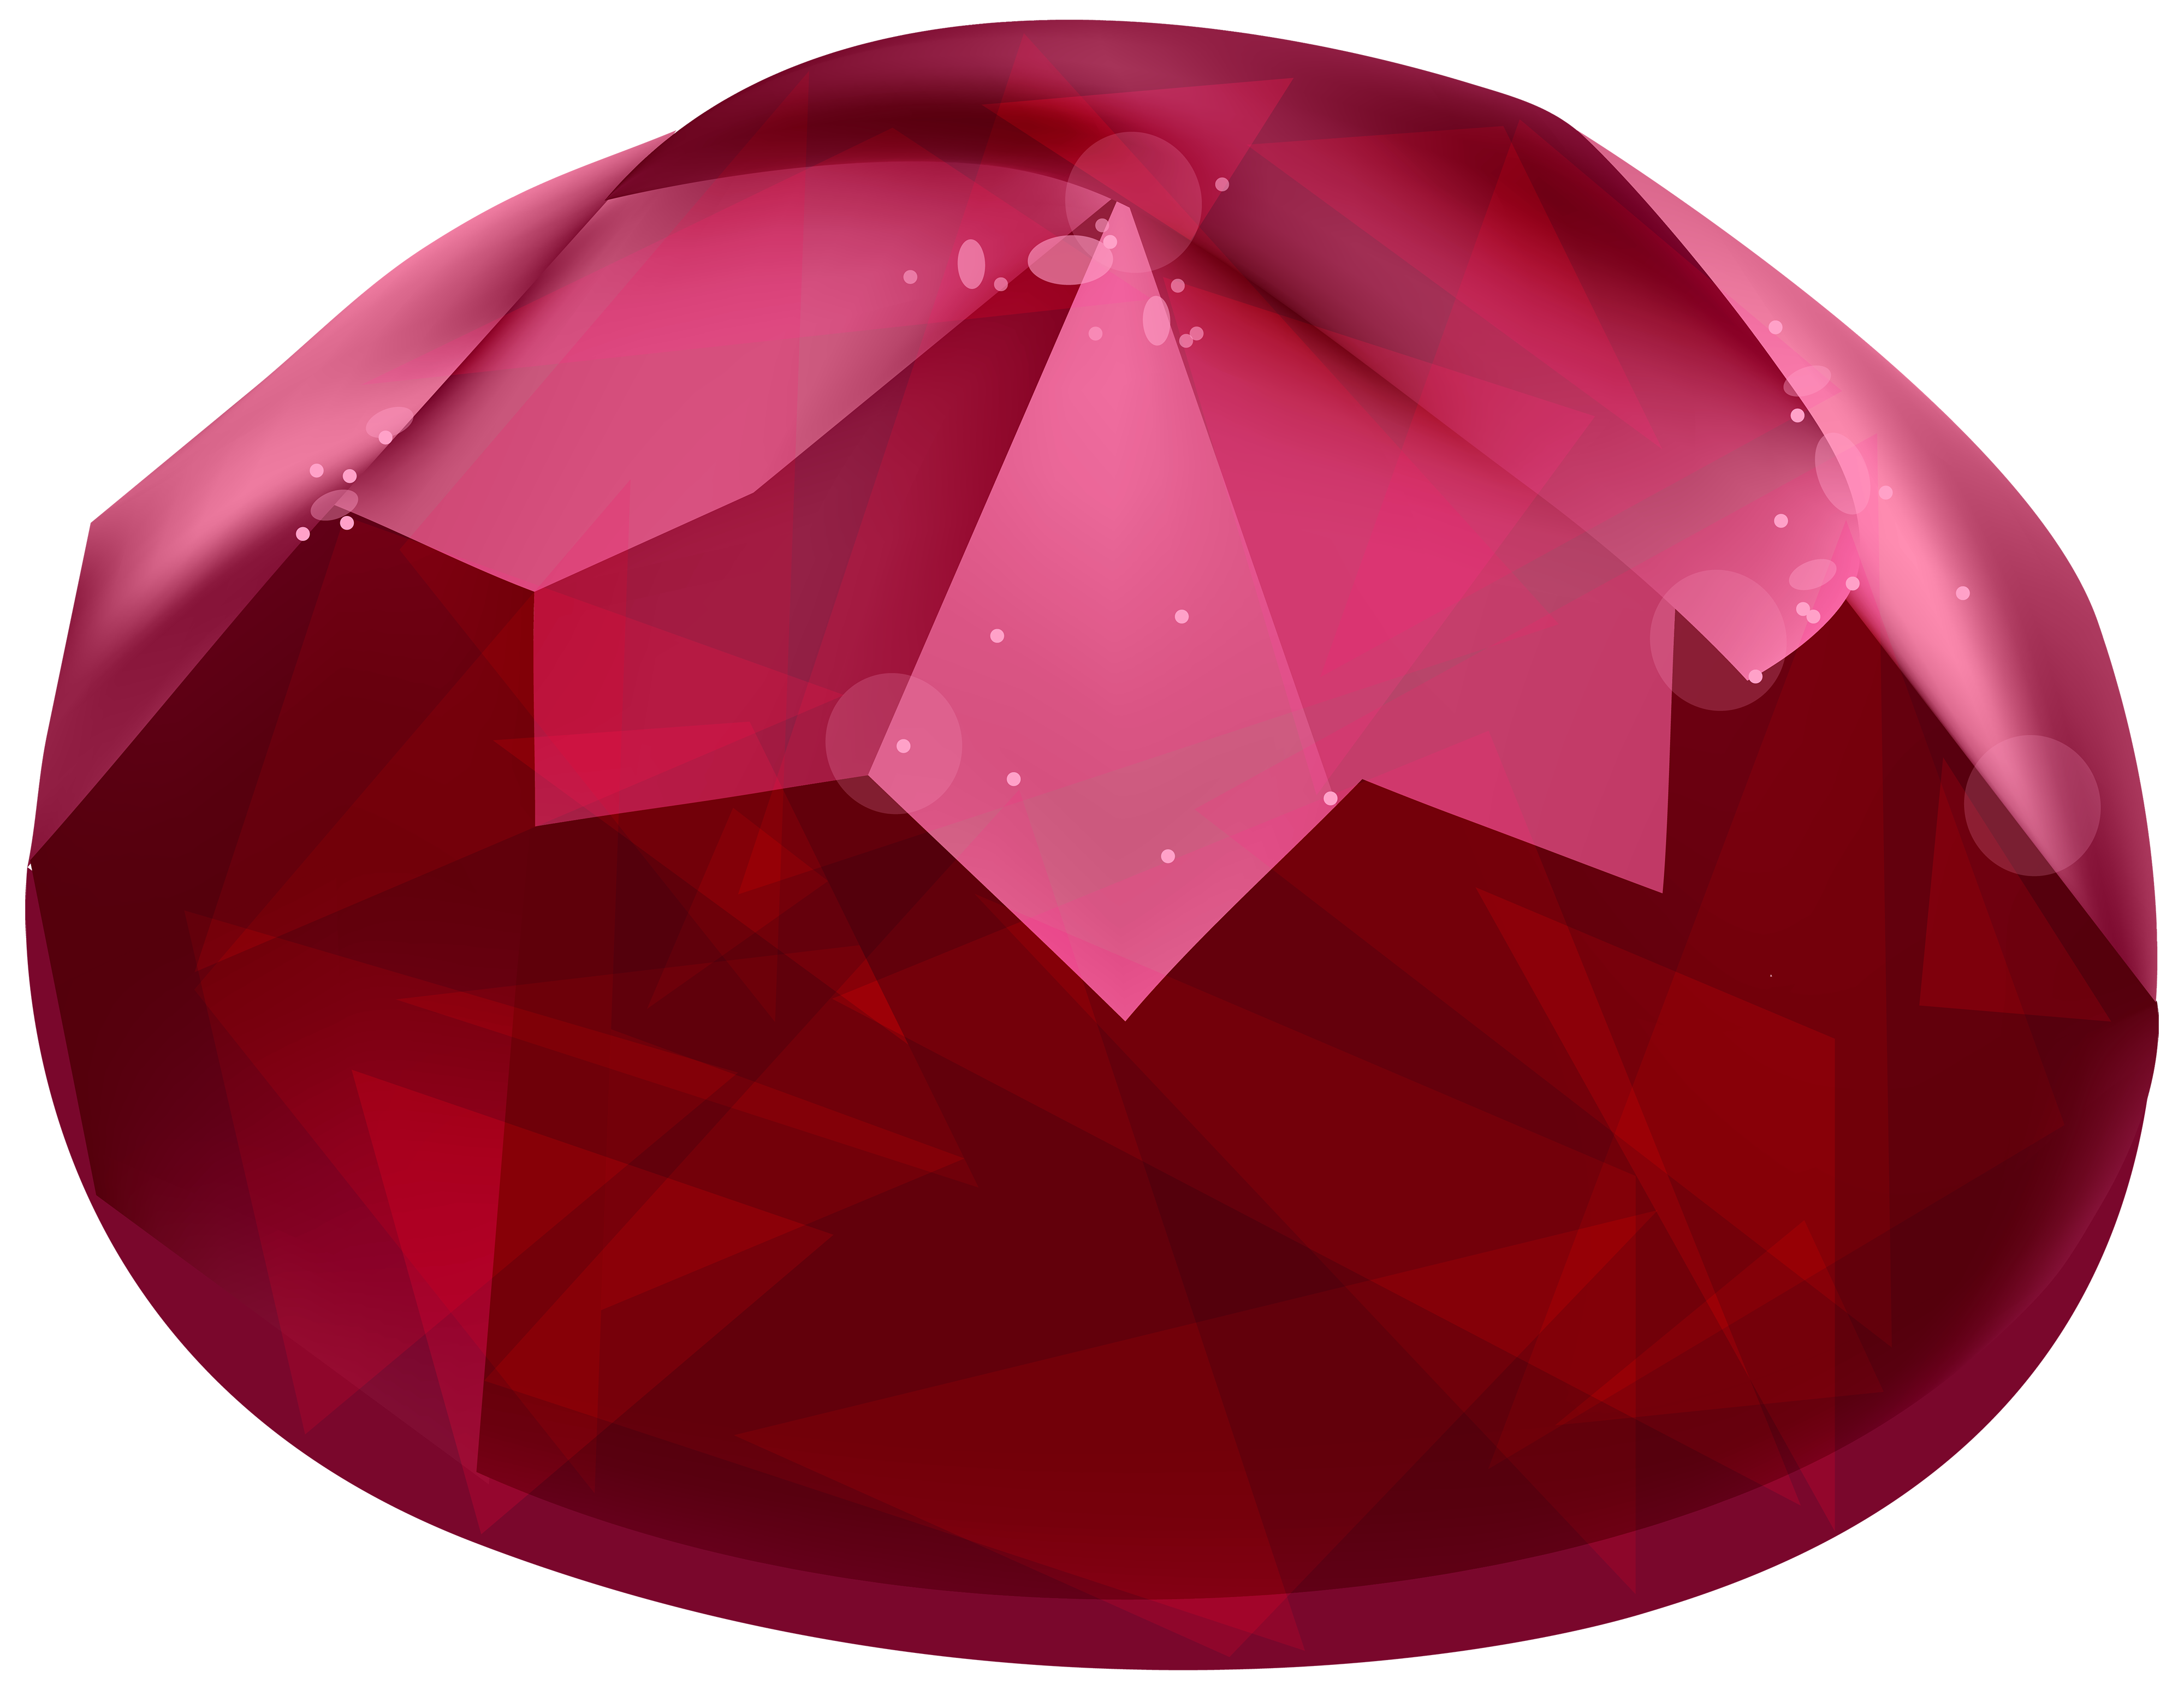 Red gem png best. Clipart diamond pink